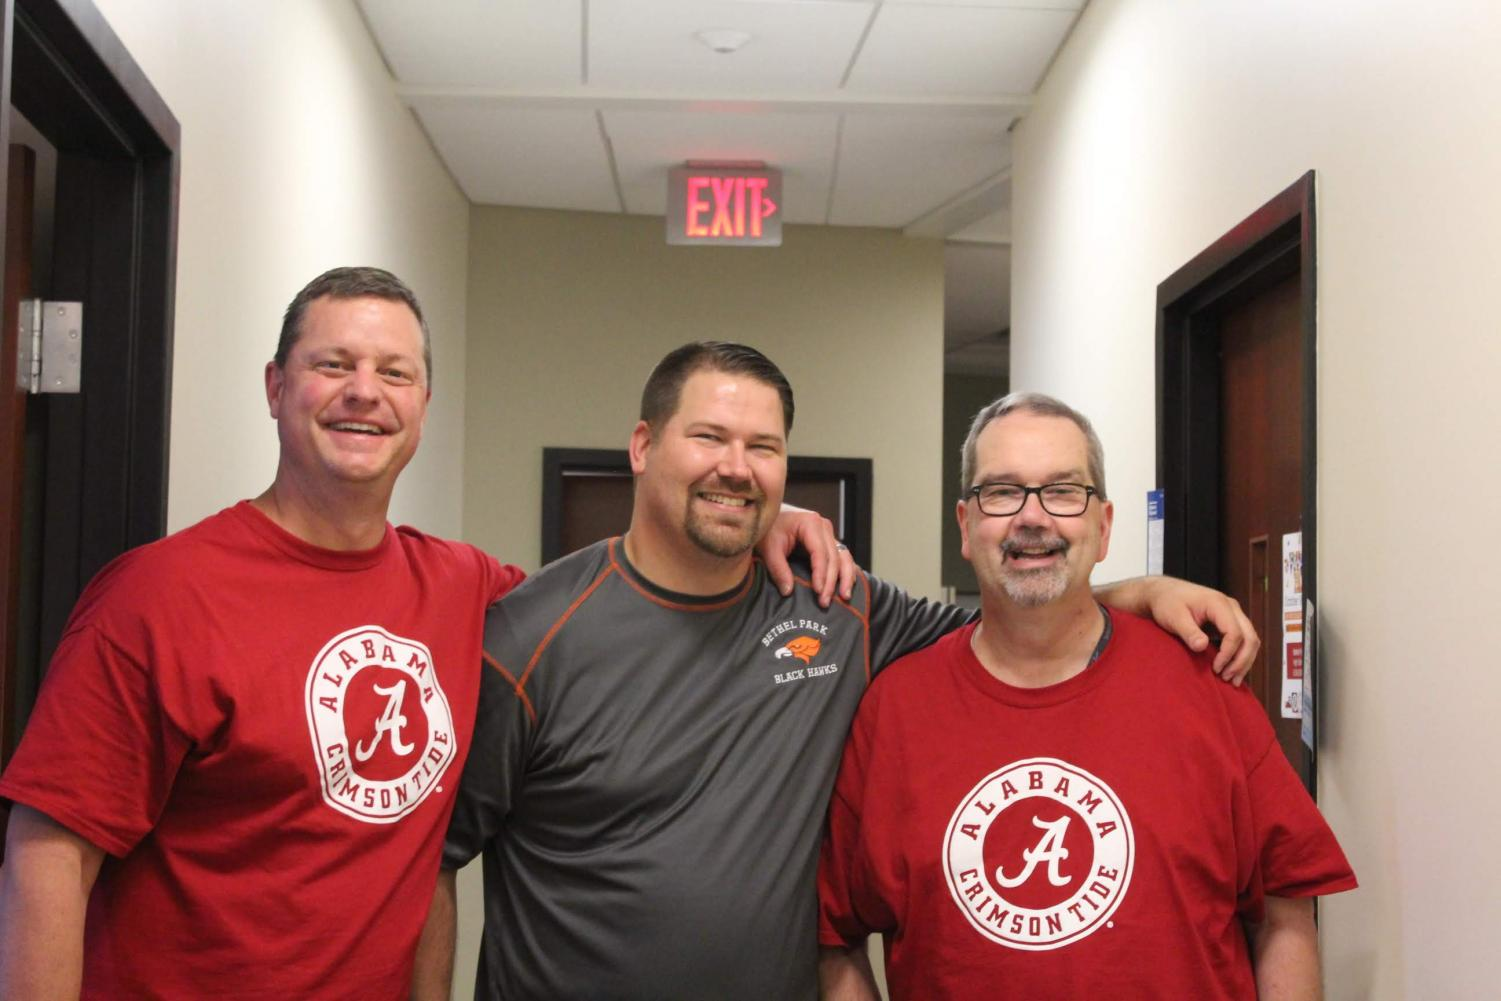 Mr. Knapp poses for a pic with Mr. Bruce and Mr. Jones.